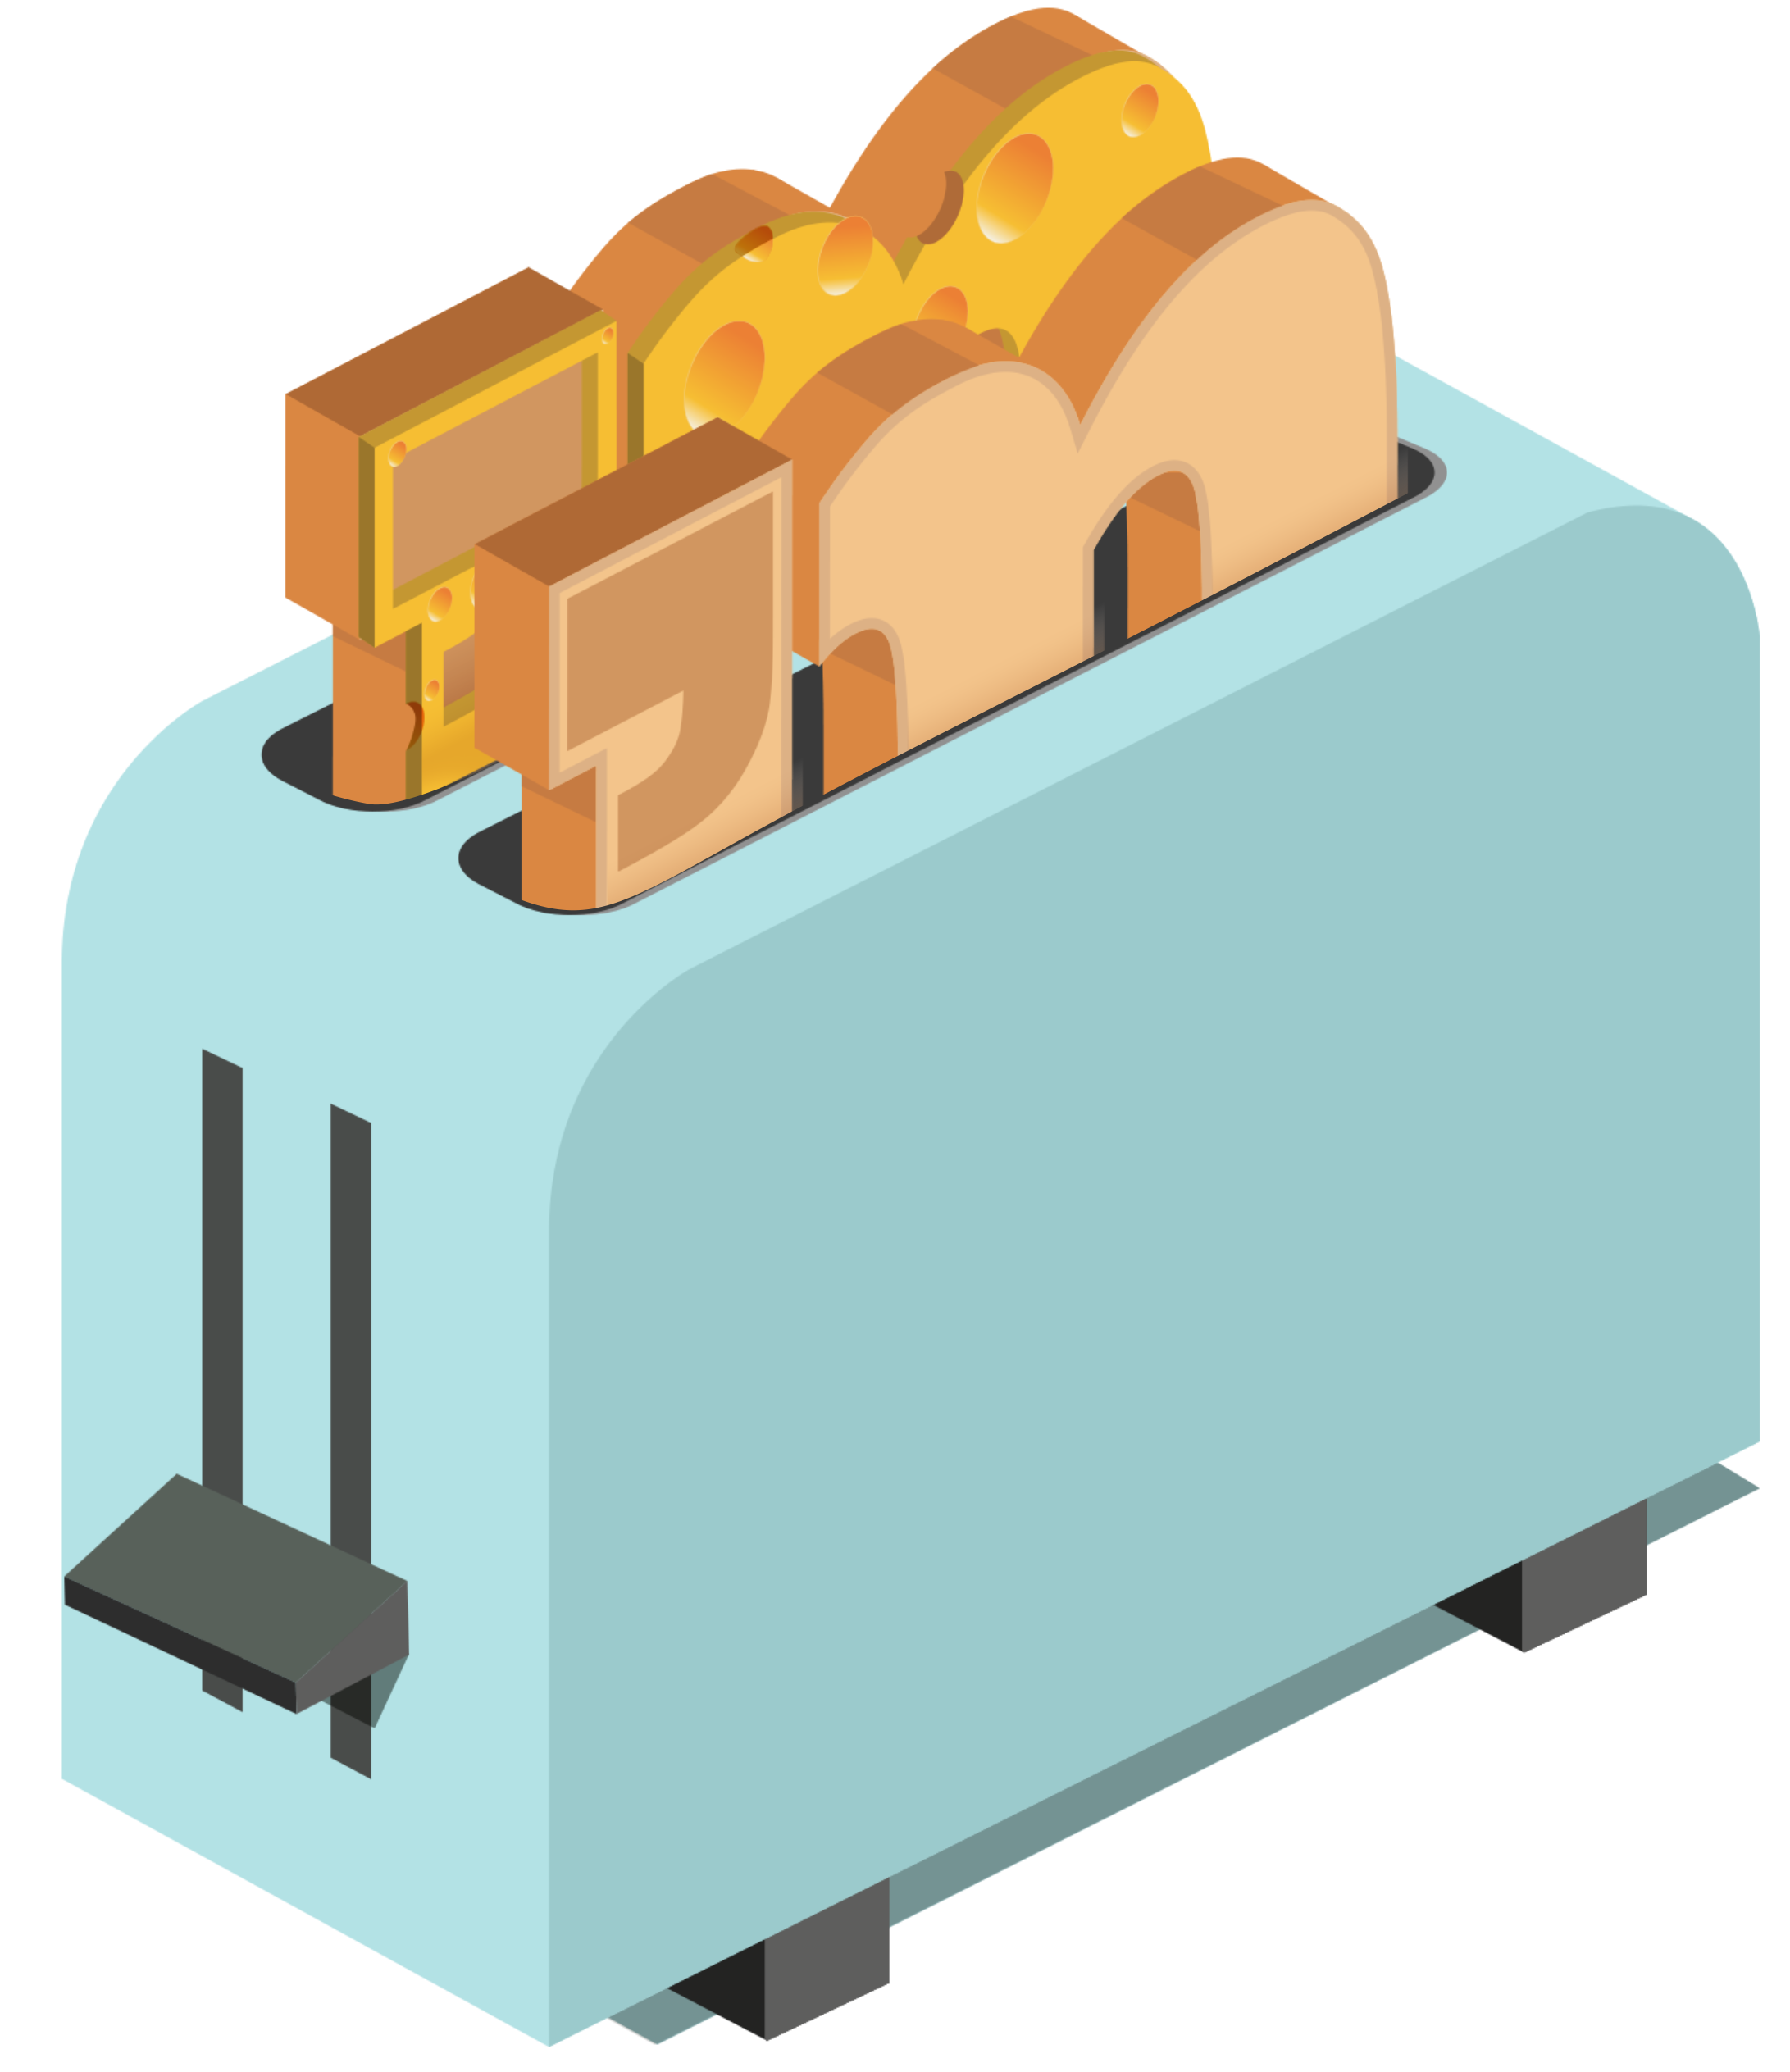 royalty free library Toaster clipart generic. Promotional shoulder bags and.